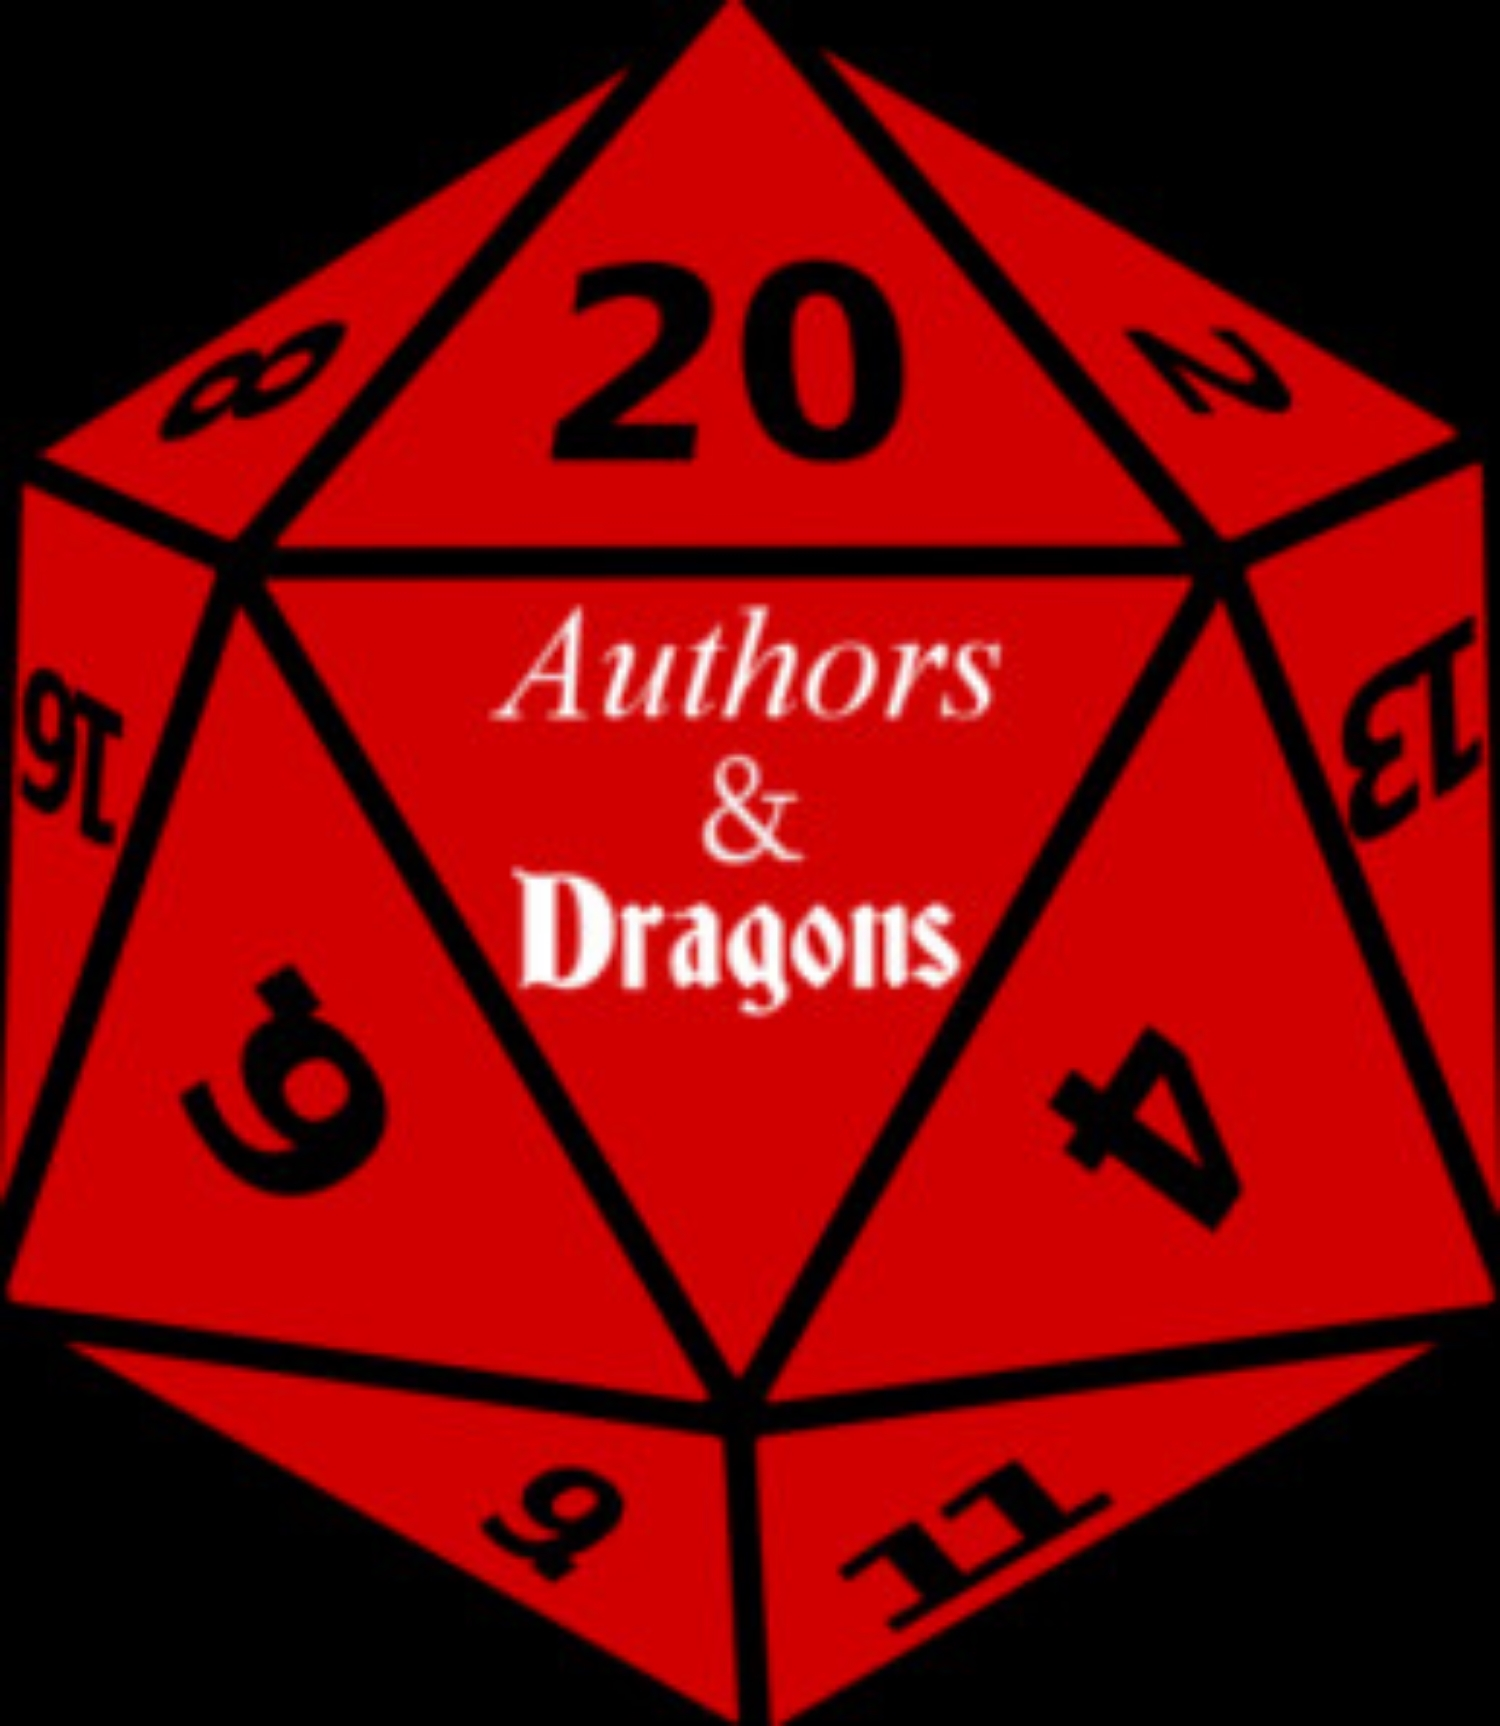 Authors & Dragons - Drew Hayes Novels